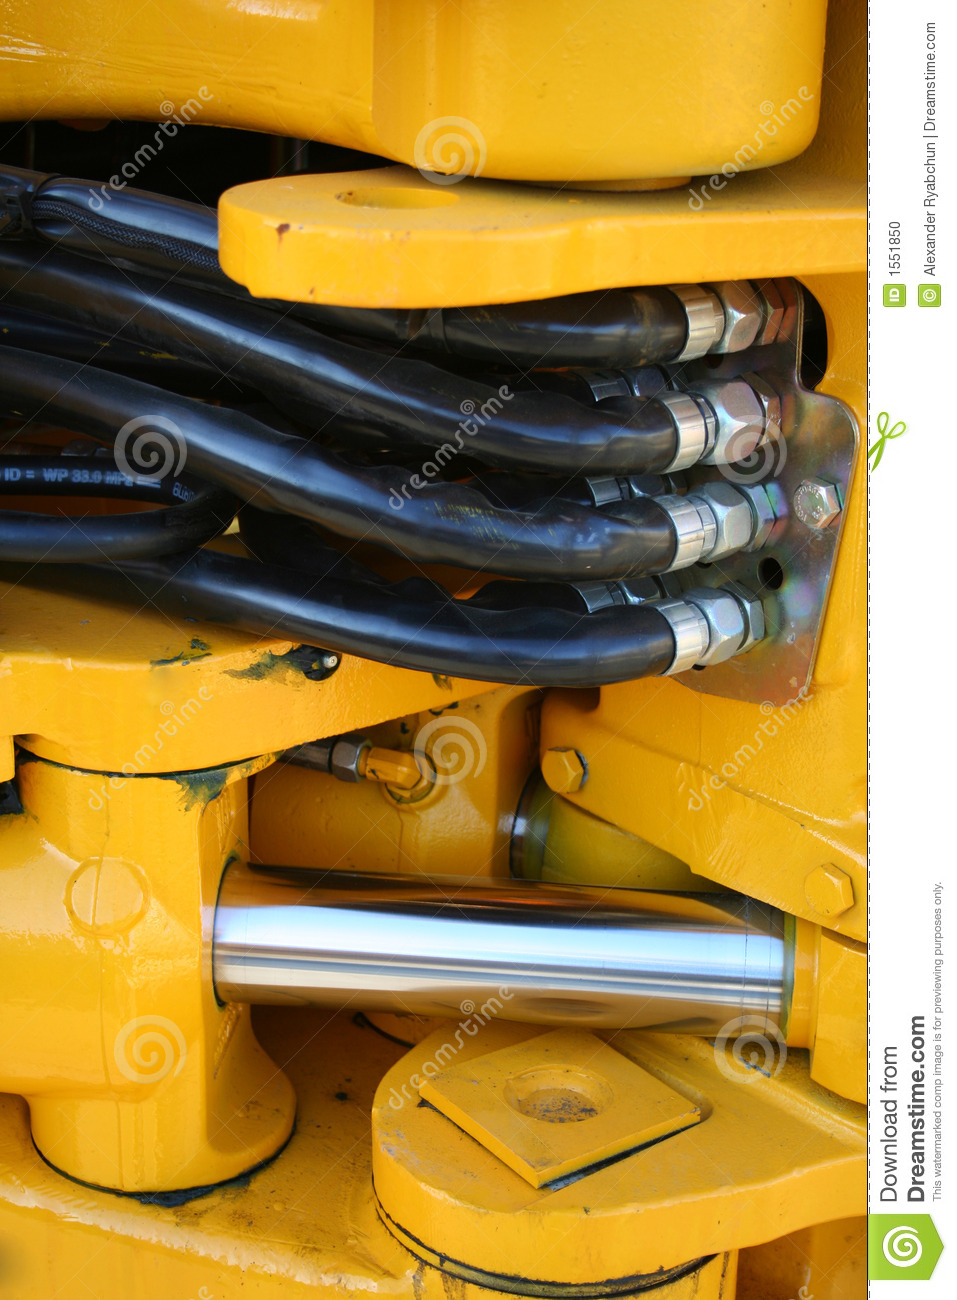 Hydraulic elements of the heavy building bulldozer